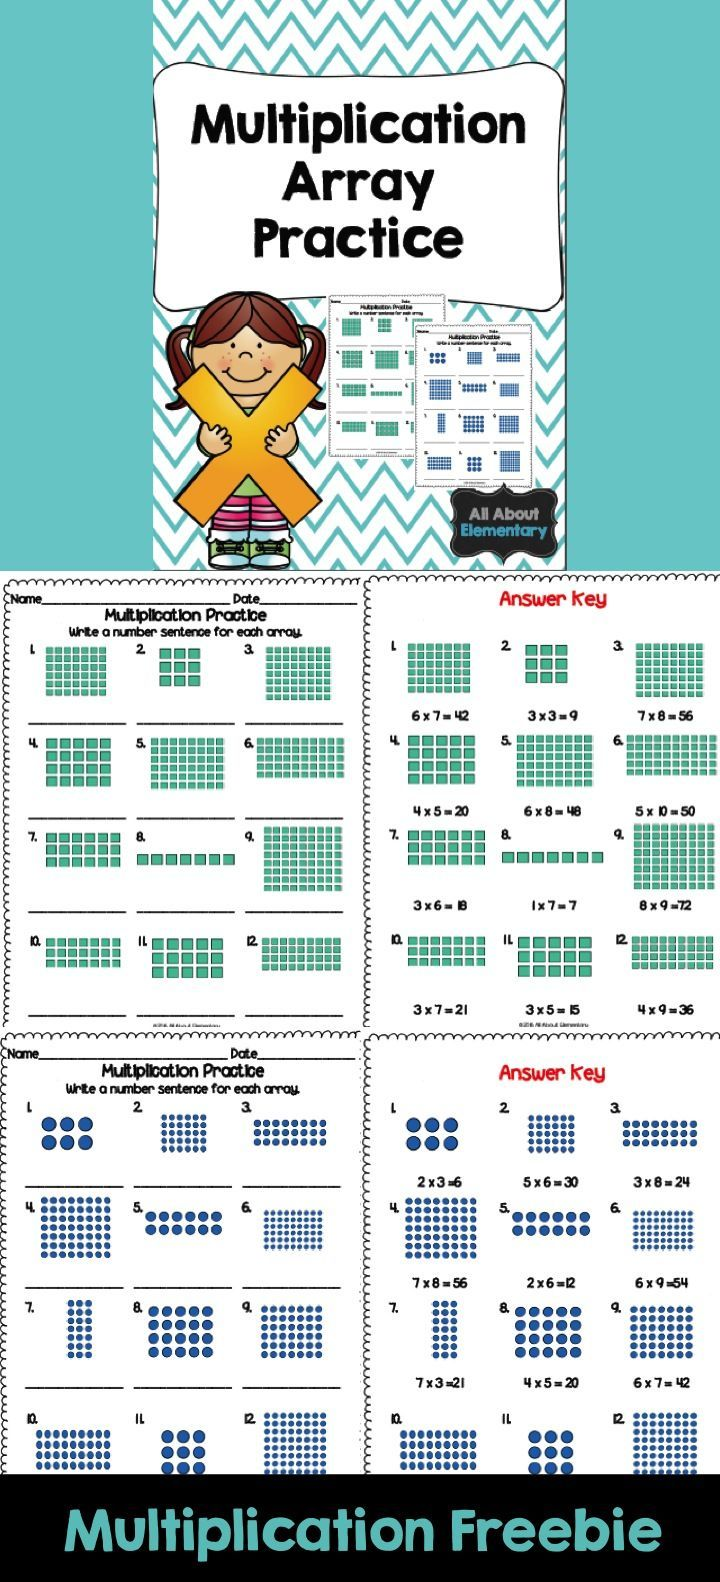 Best 25 4th grade multiplication ideas on pinterest math this freebie is a great way to practice writing multiplication number sentences that match the array there are two practice pages with answer keys gamestrikefo Gallery